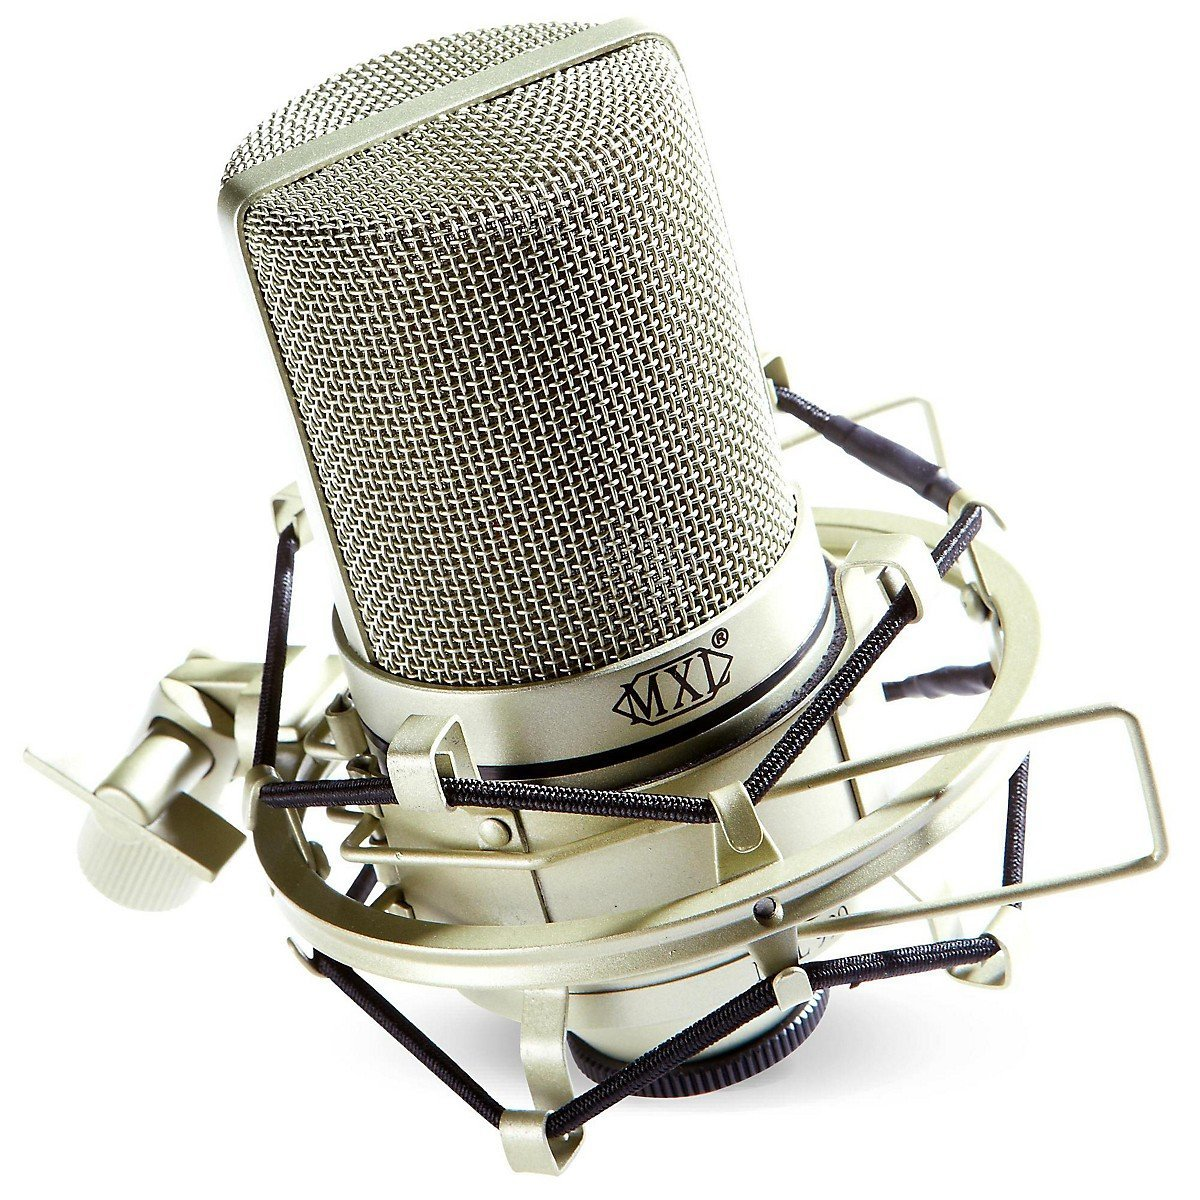 MXL 990 Review: The Most Popular sub $100 Condenser Mic, Period. - MXL -  Mauritania Xpress Line Microphones